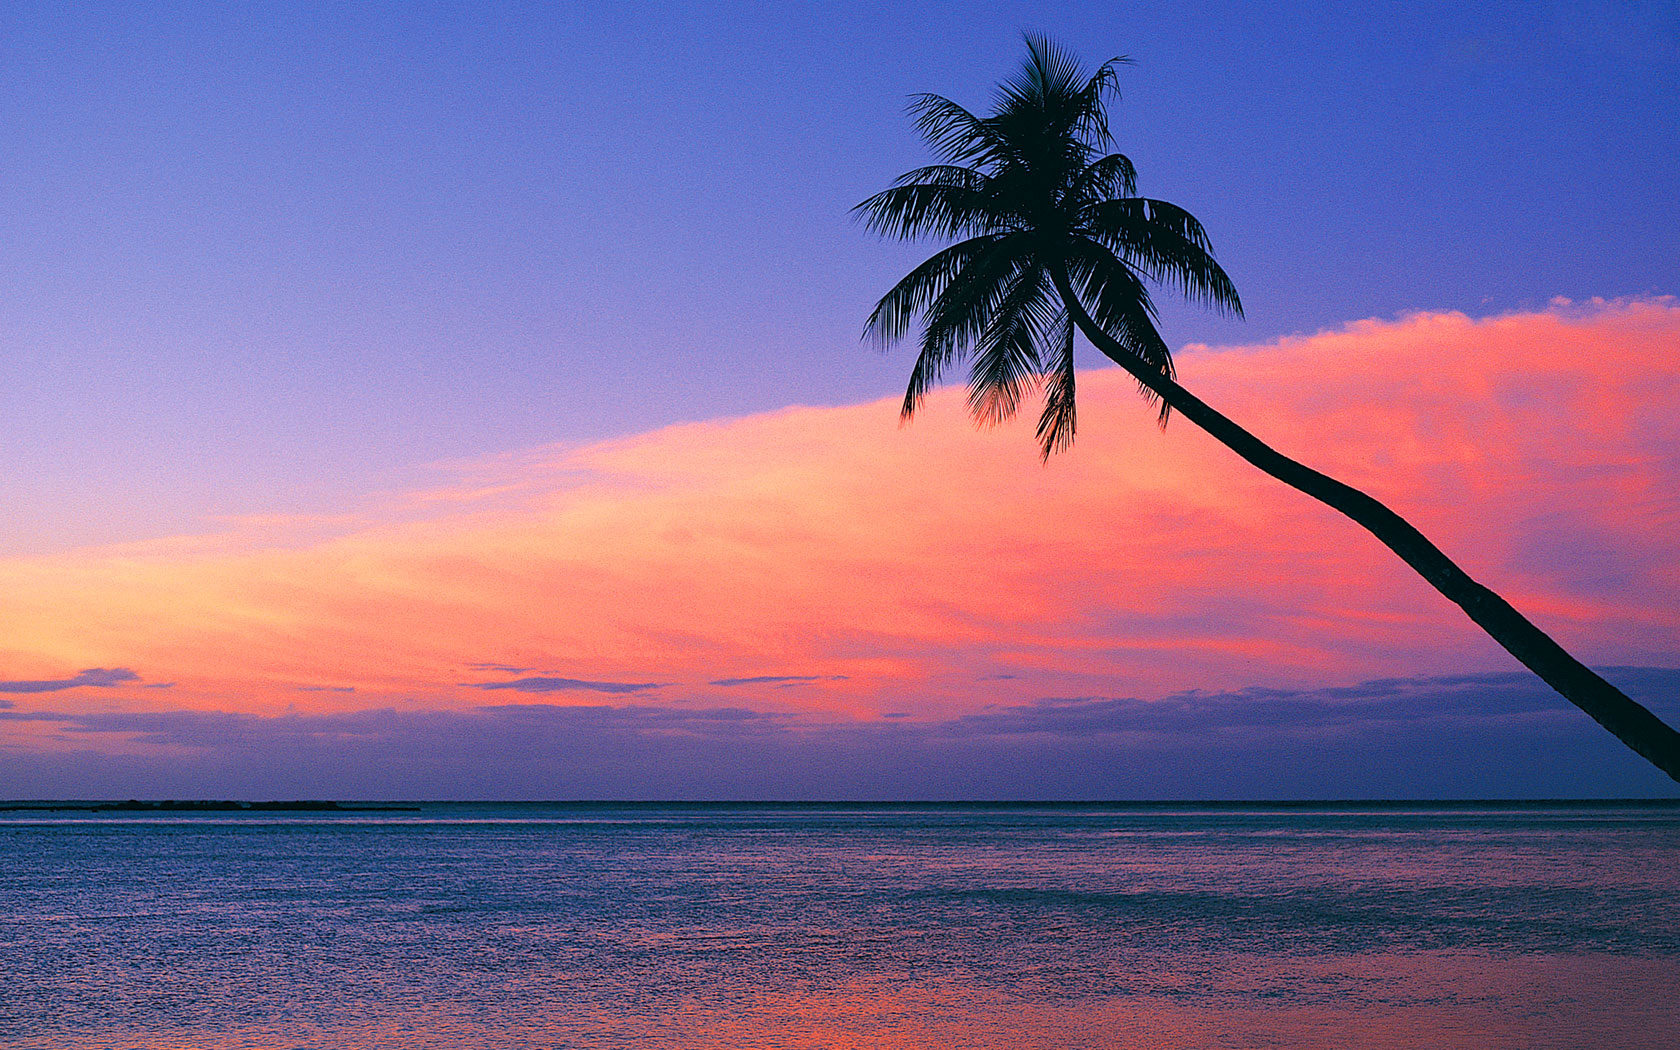 Look at the pink sunset from the beach wallpaper beach for Look wallpaper